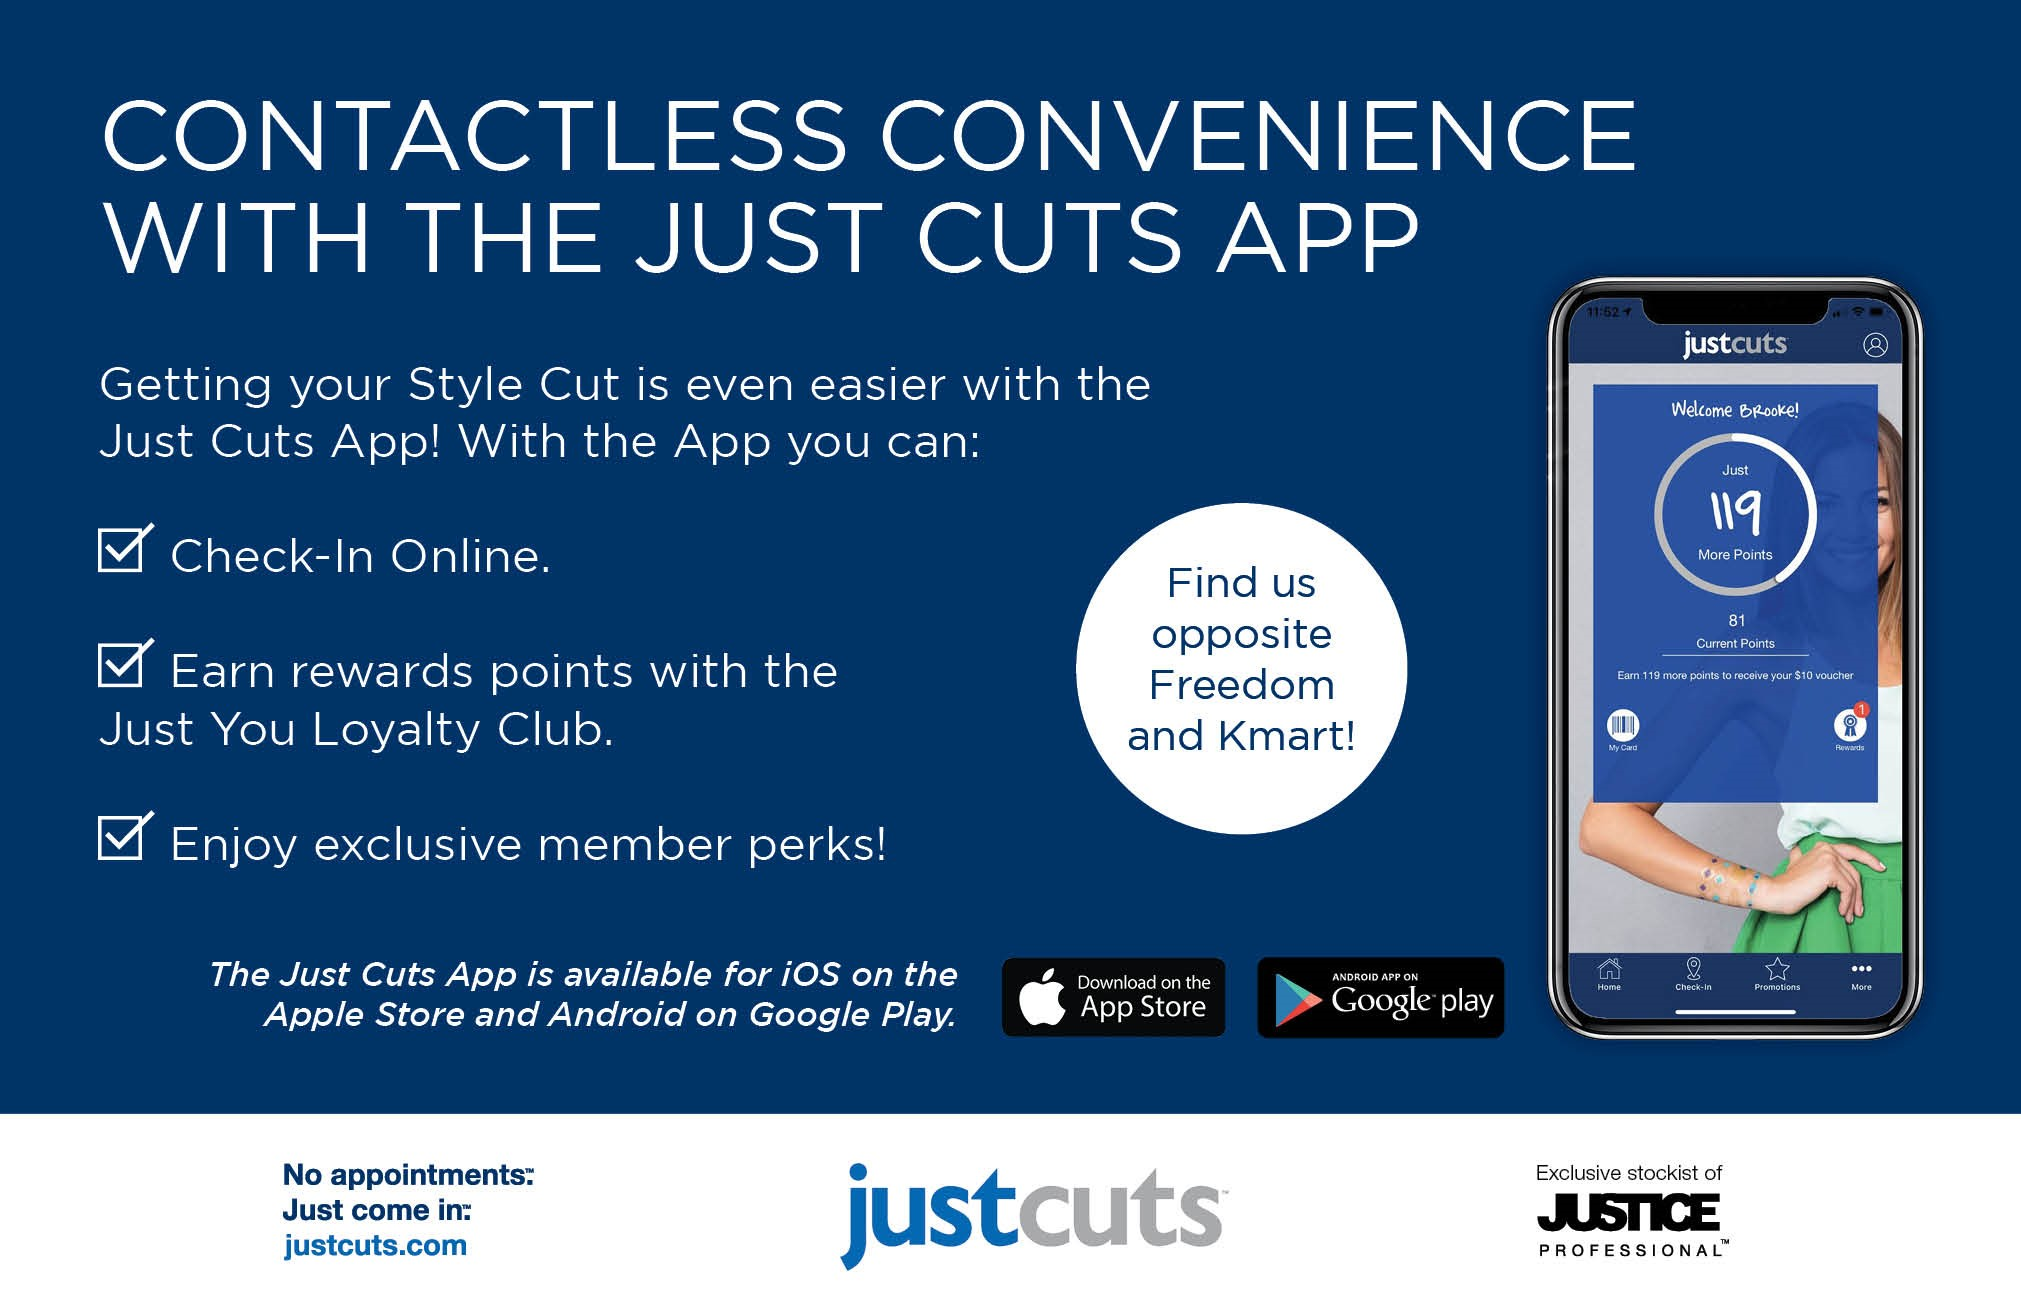 Just Cuts Apps